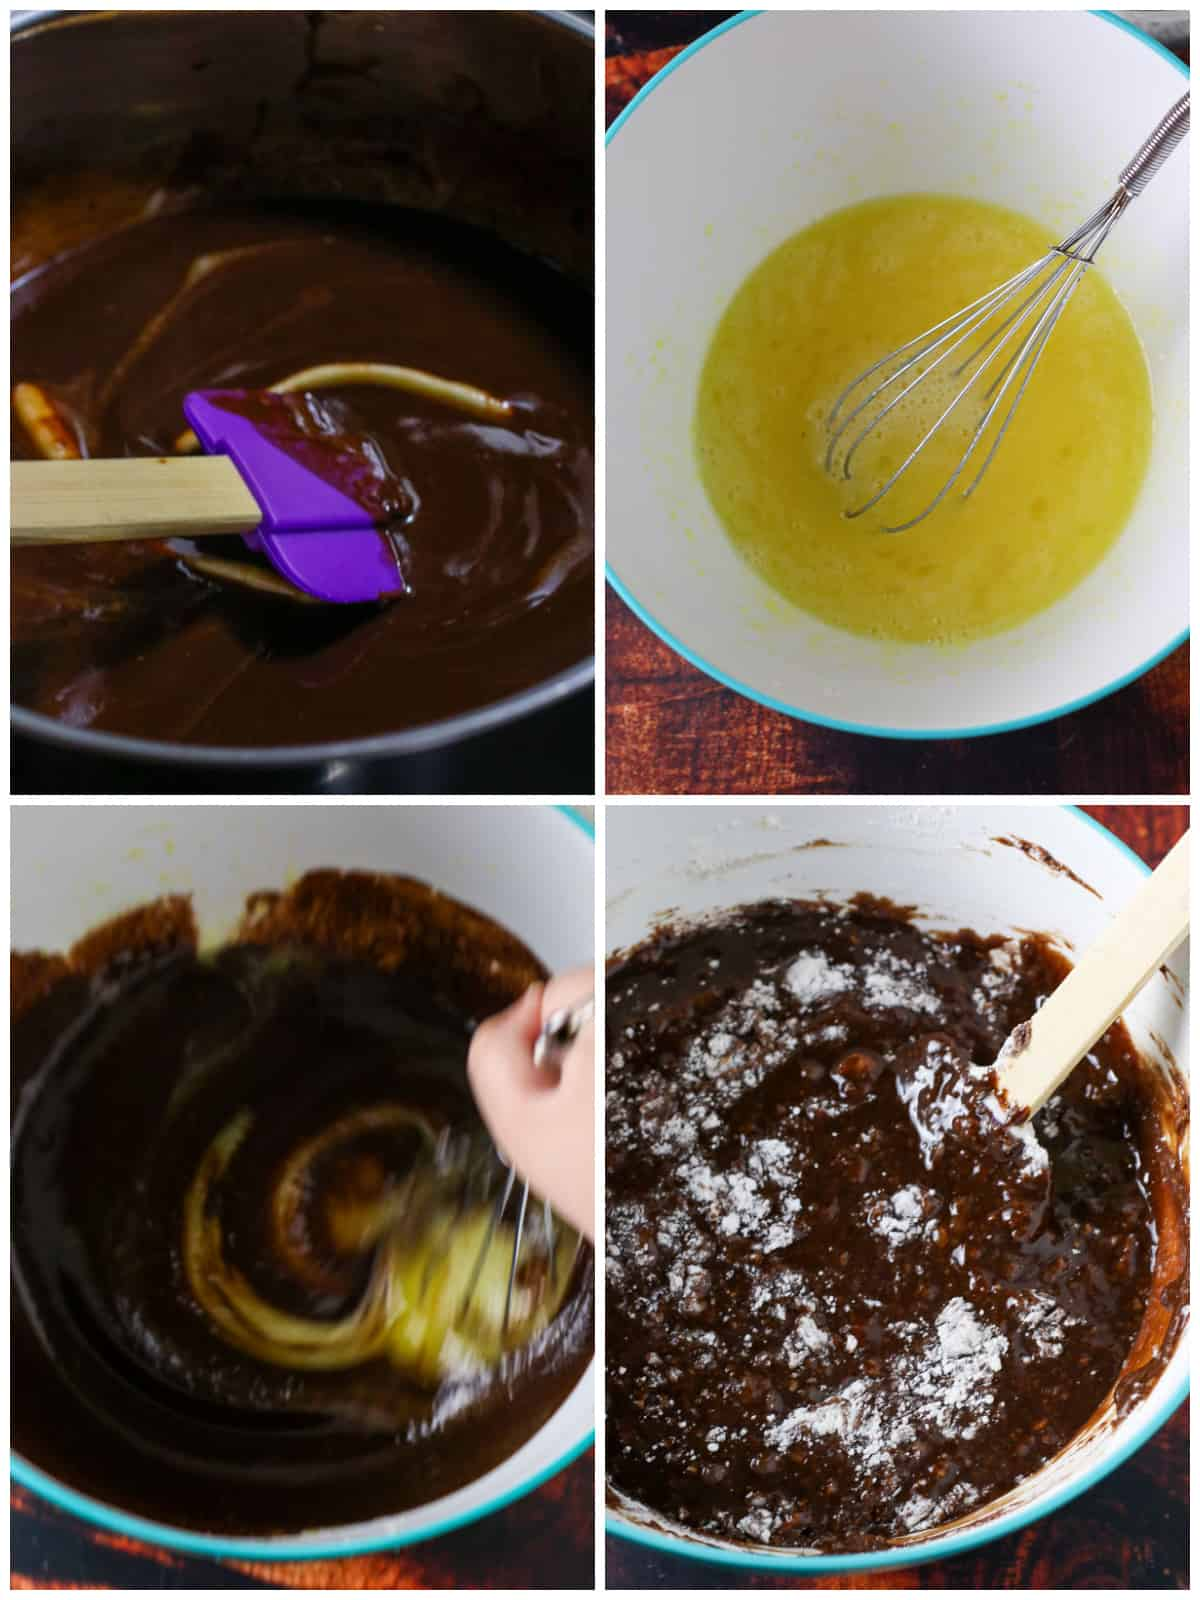 A collage showing the mixing process of the chocolate brownie batter.